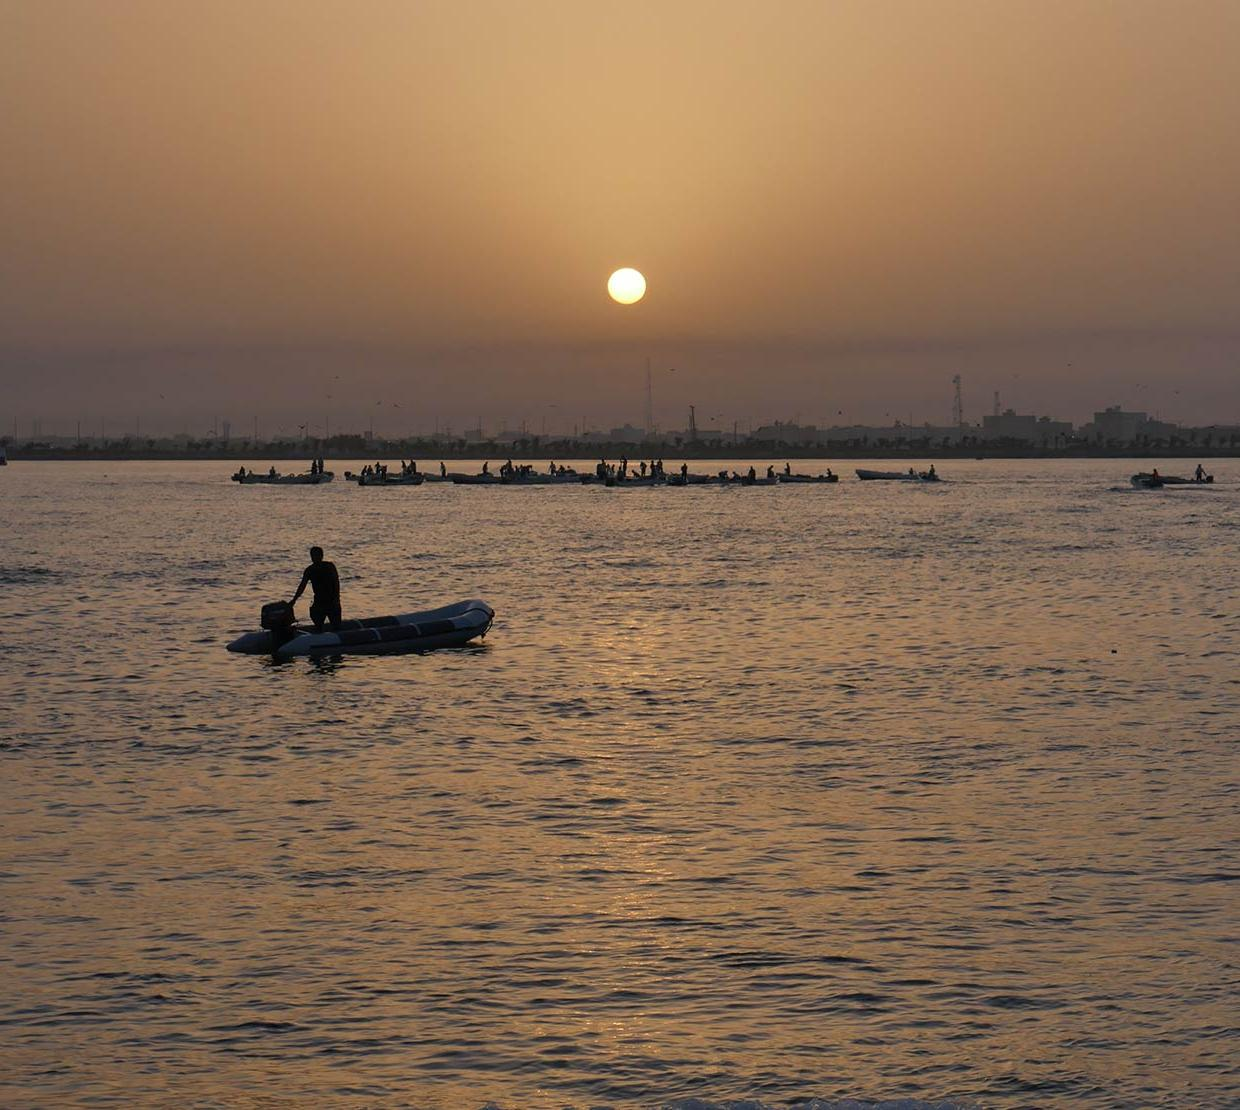 person riding small boat in ocean during sunset